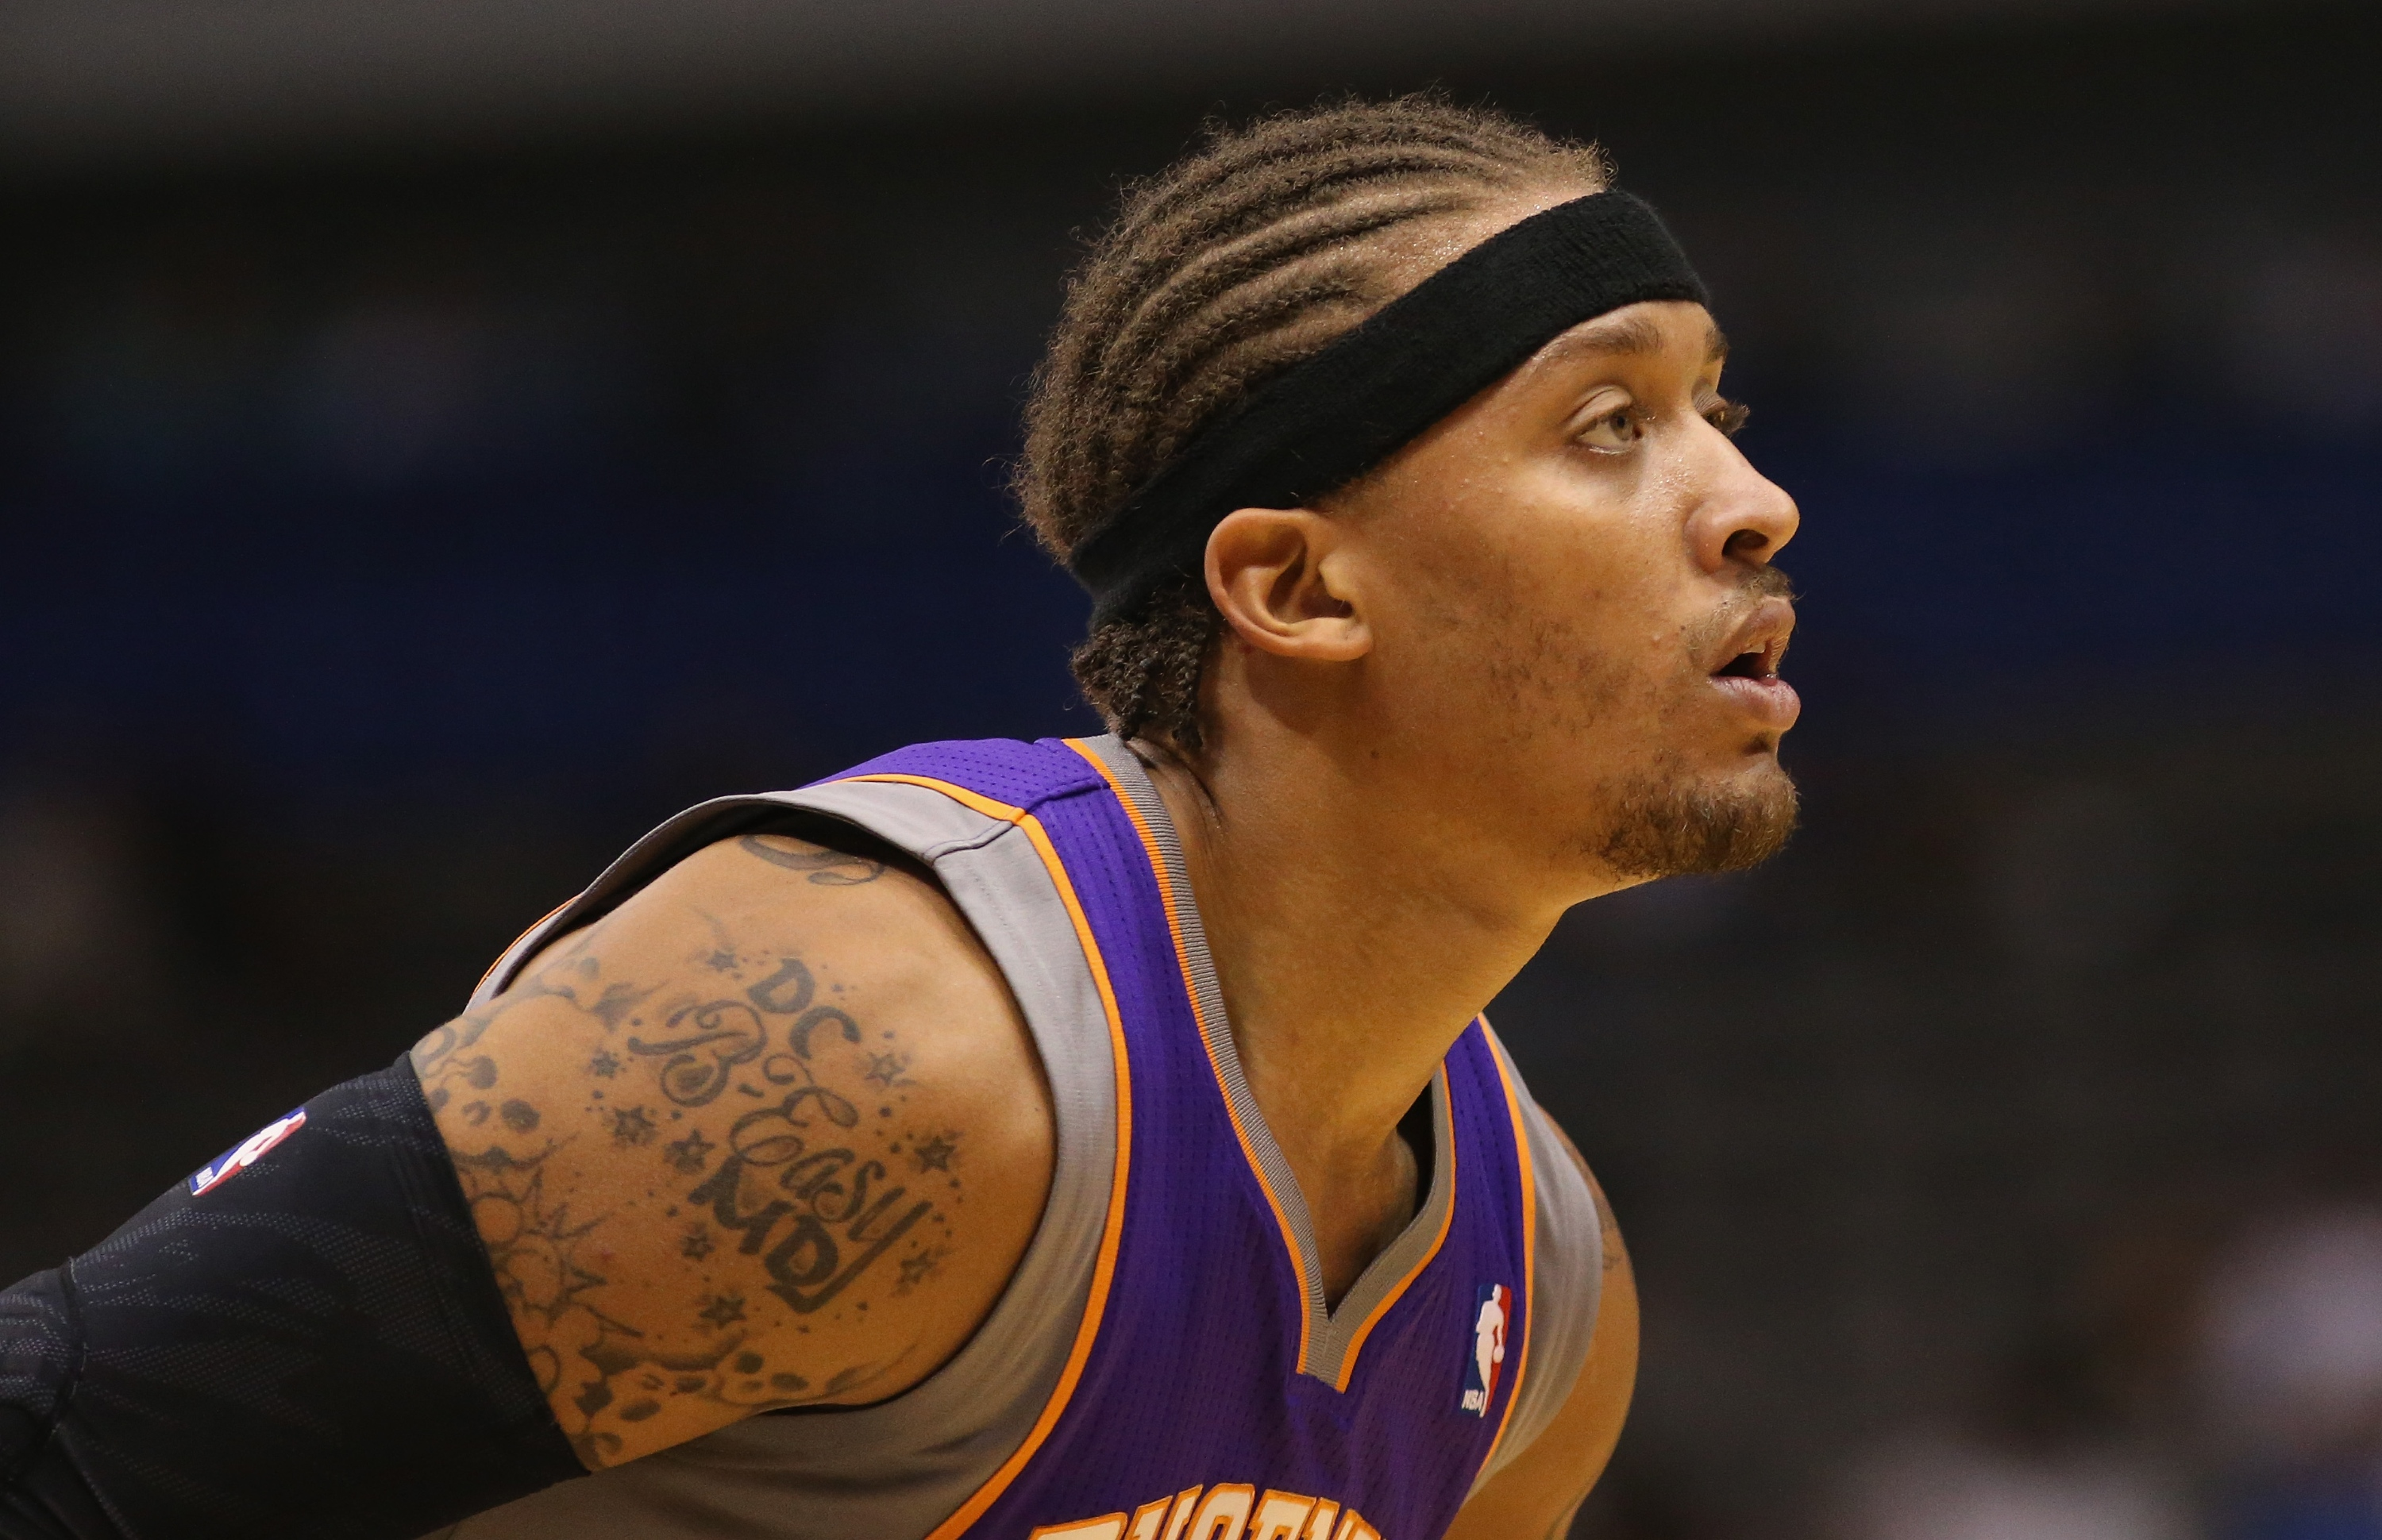 Michael Beasley signed a three-year, $18 million contract with the Suns. (Getty Images)